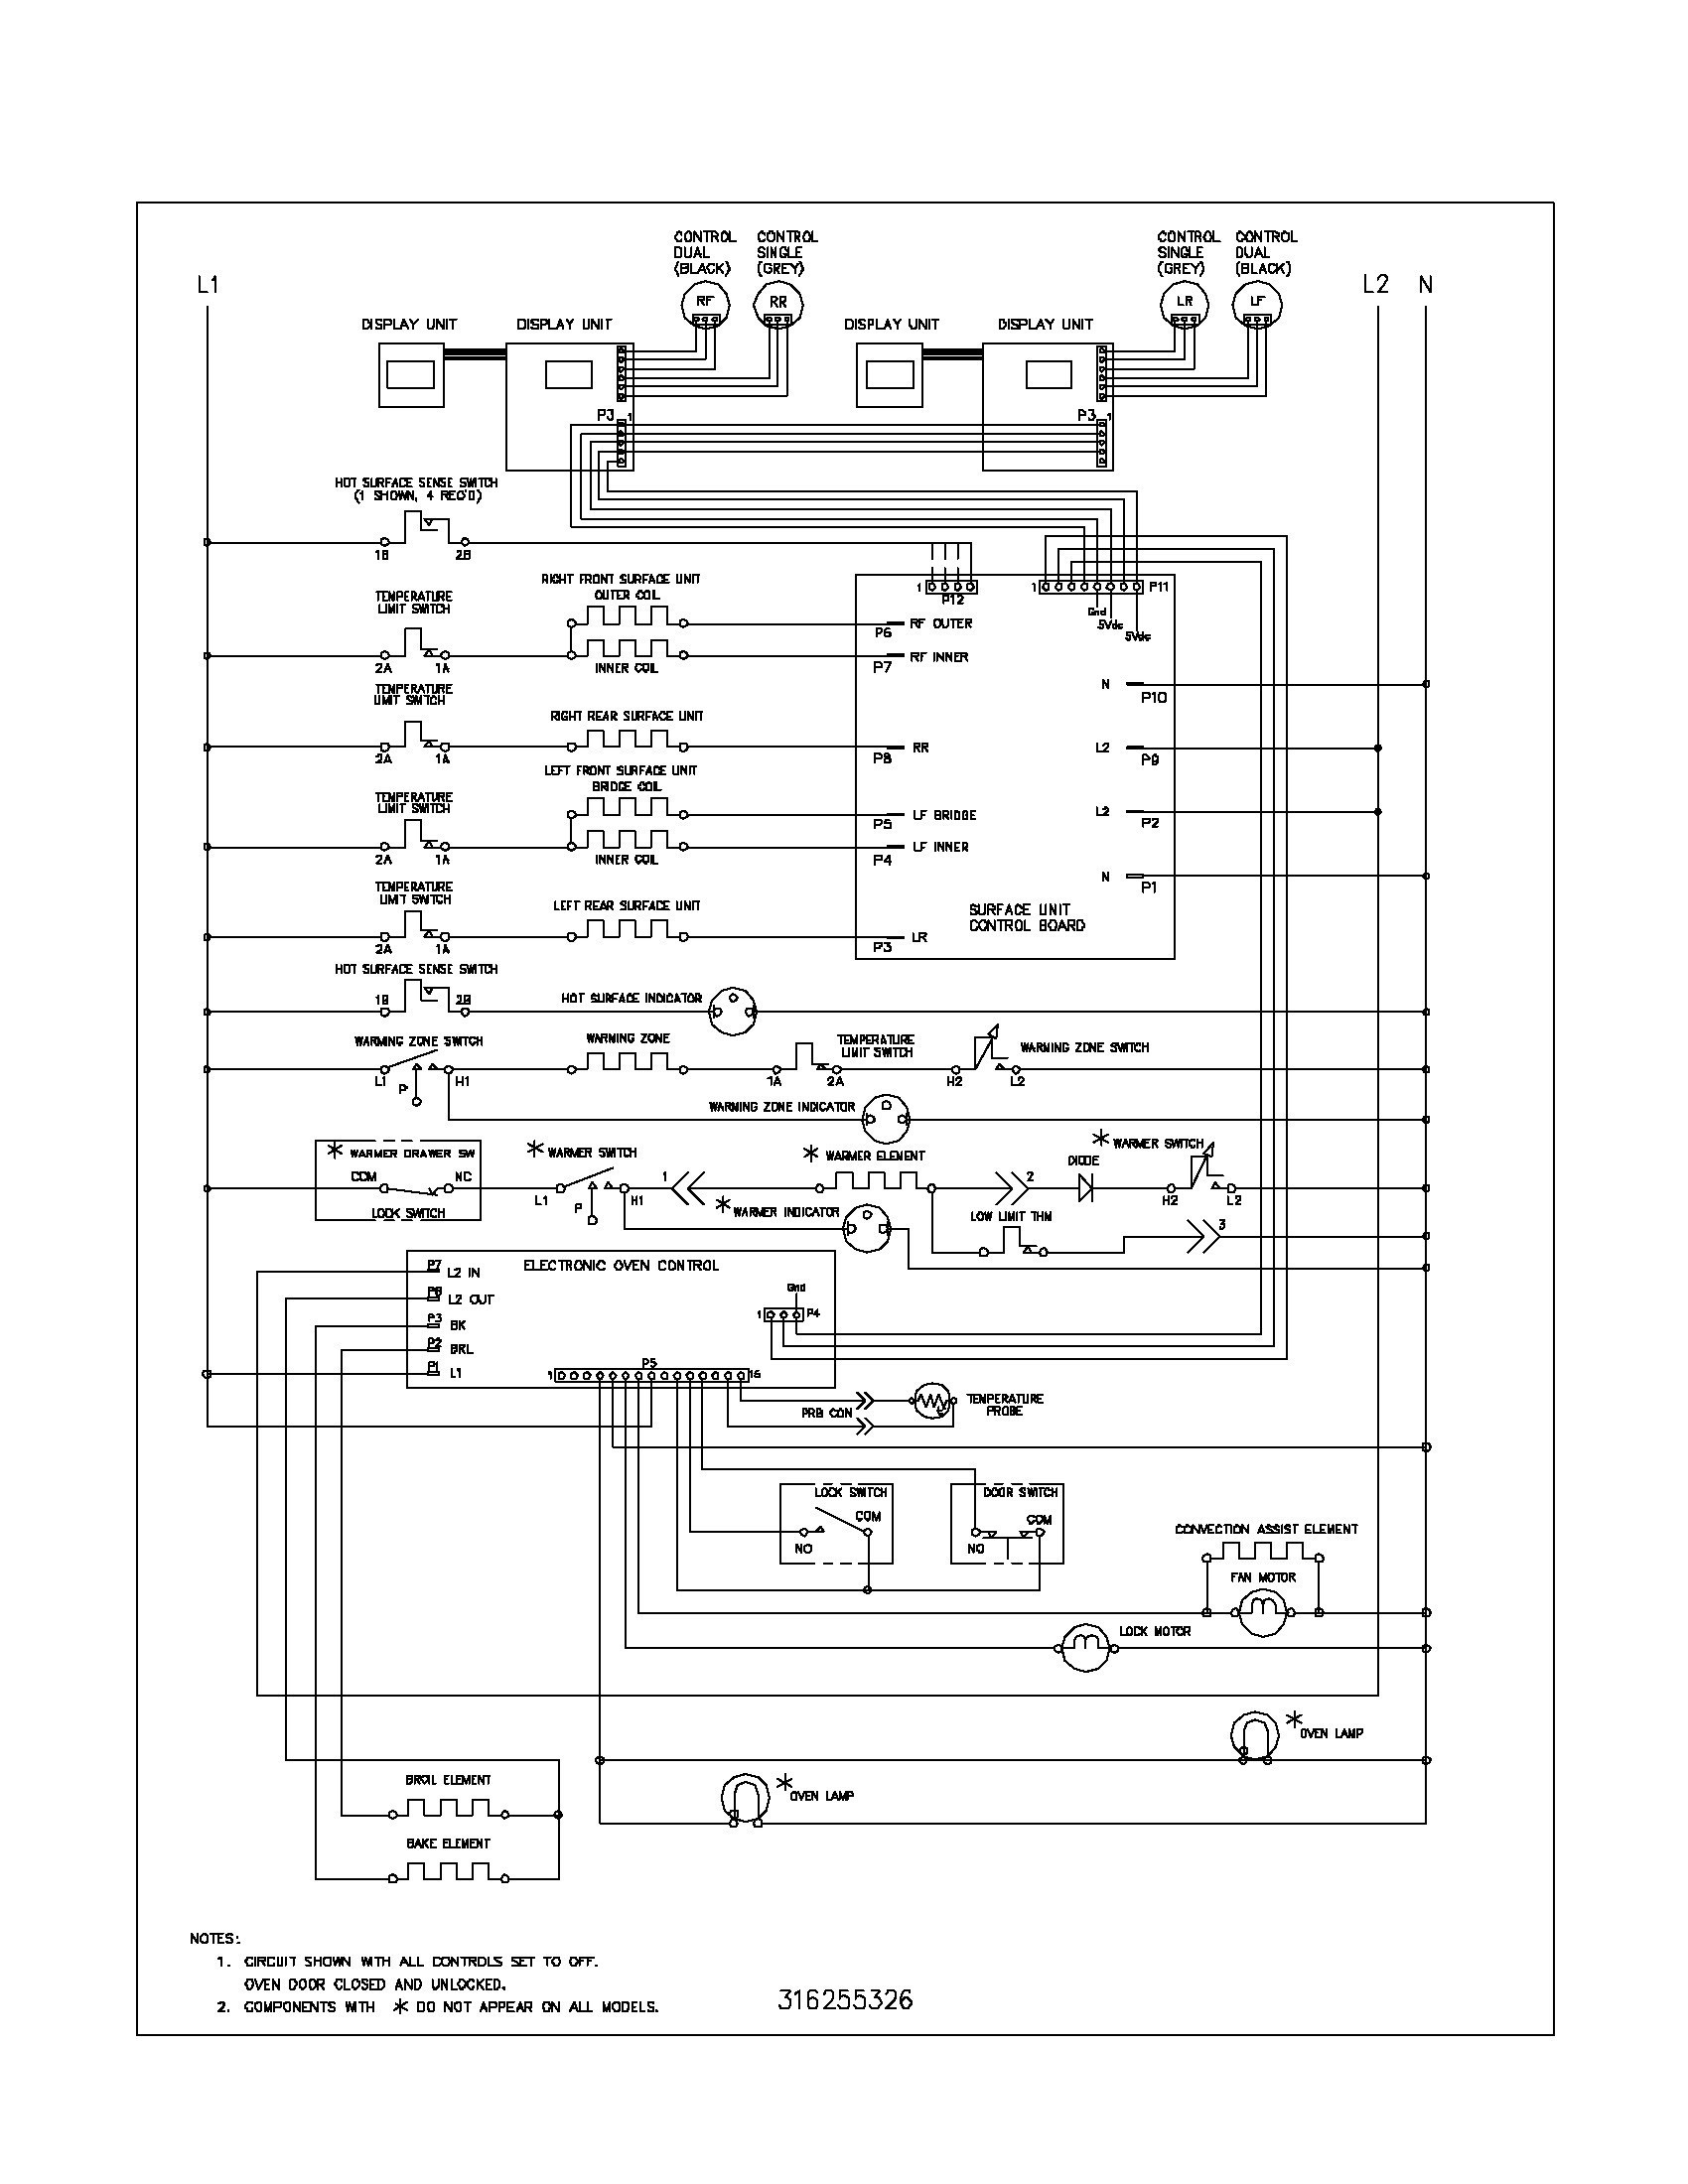 Armstrong Electric Furnace Wiring Diagram 32 Armstrong Furnace Parts Diagram Free Wiring Diagram source Of Armstrong Electric Furnace Wiring Diagram